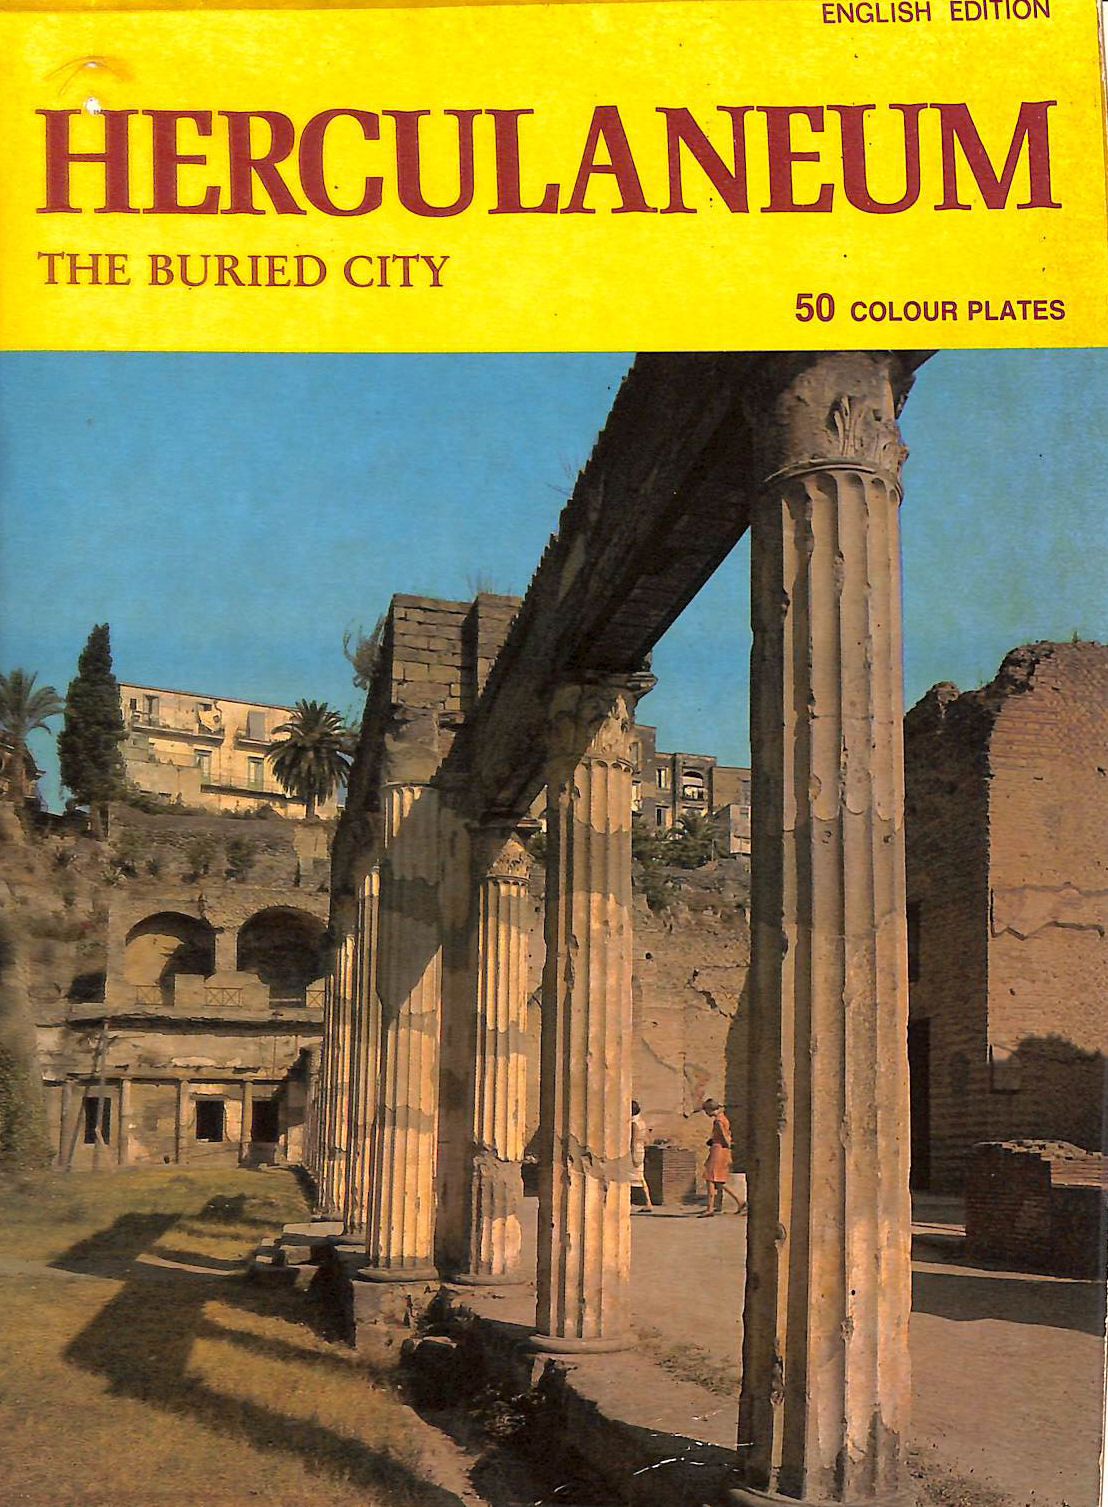 Image for Herculaneum: The Buried City